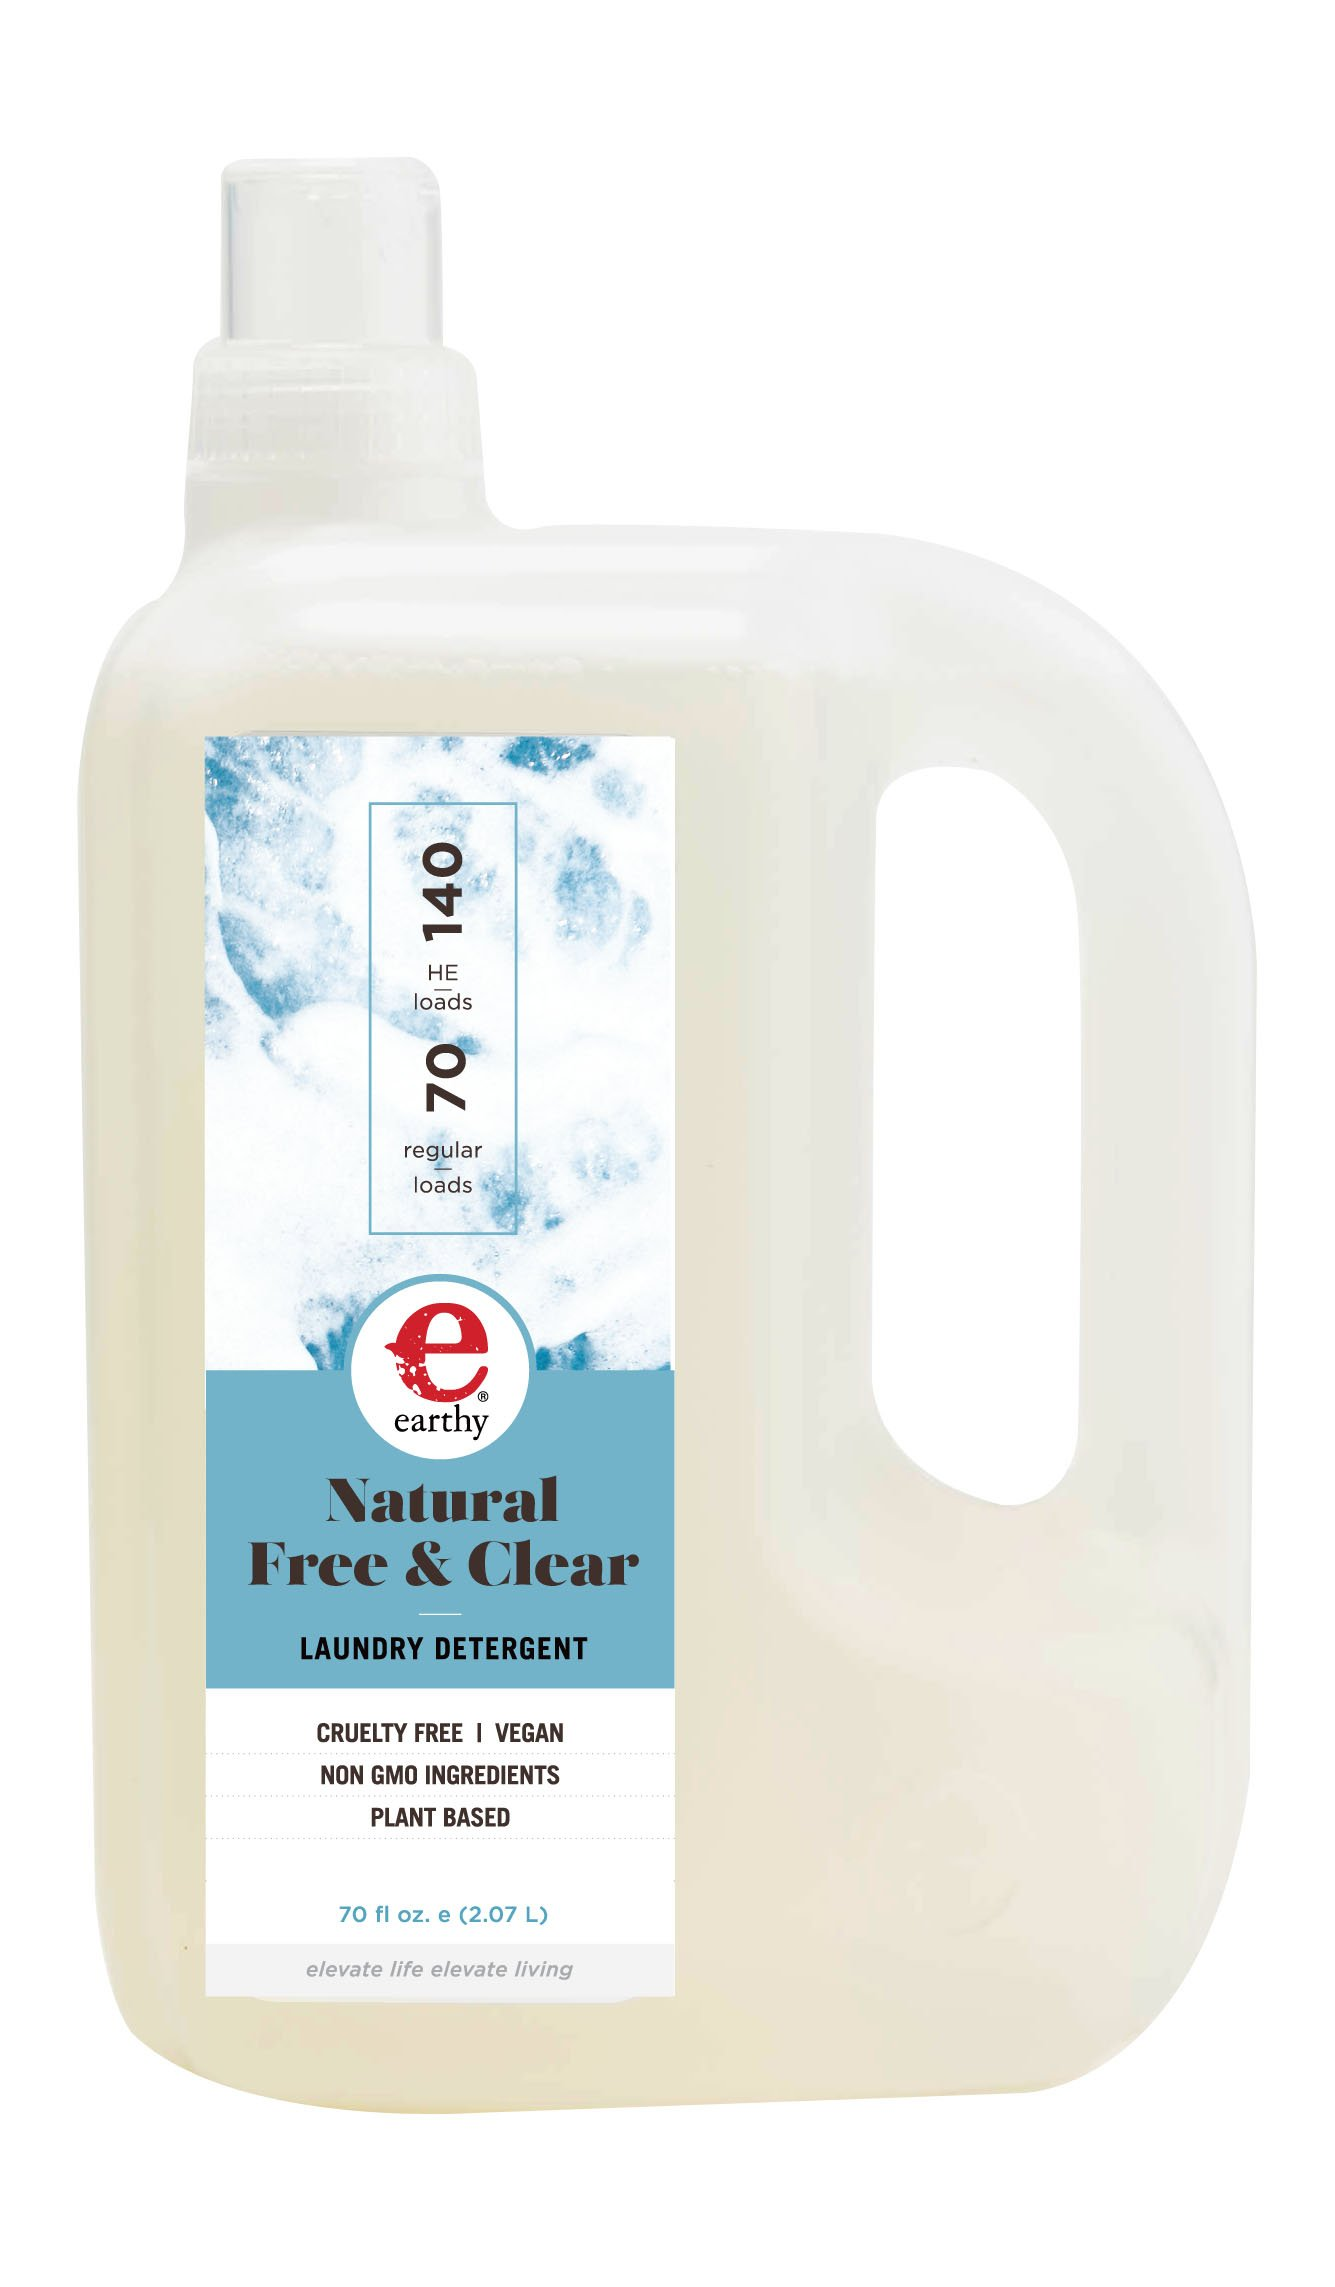 Earthy Natural Laundry Detergent, Free & Clear, 70 Ounce